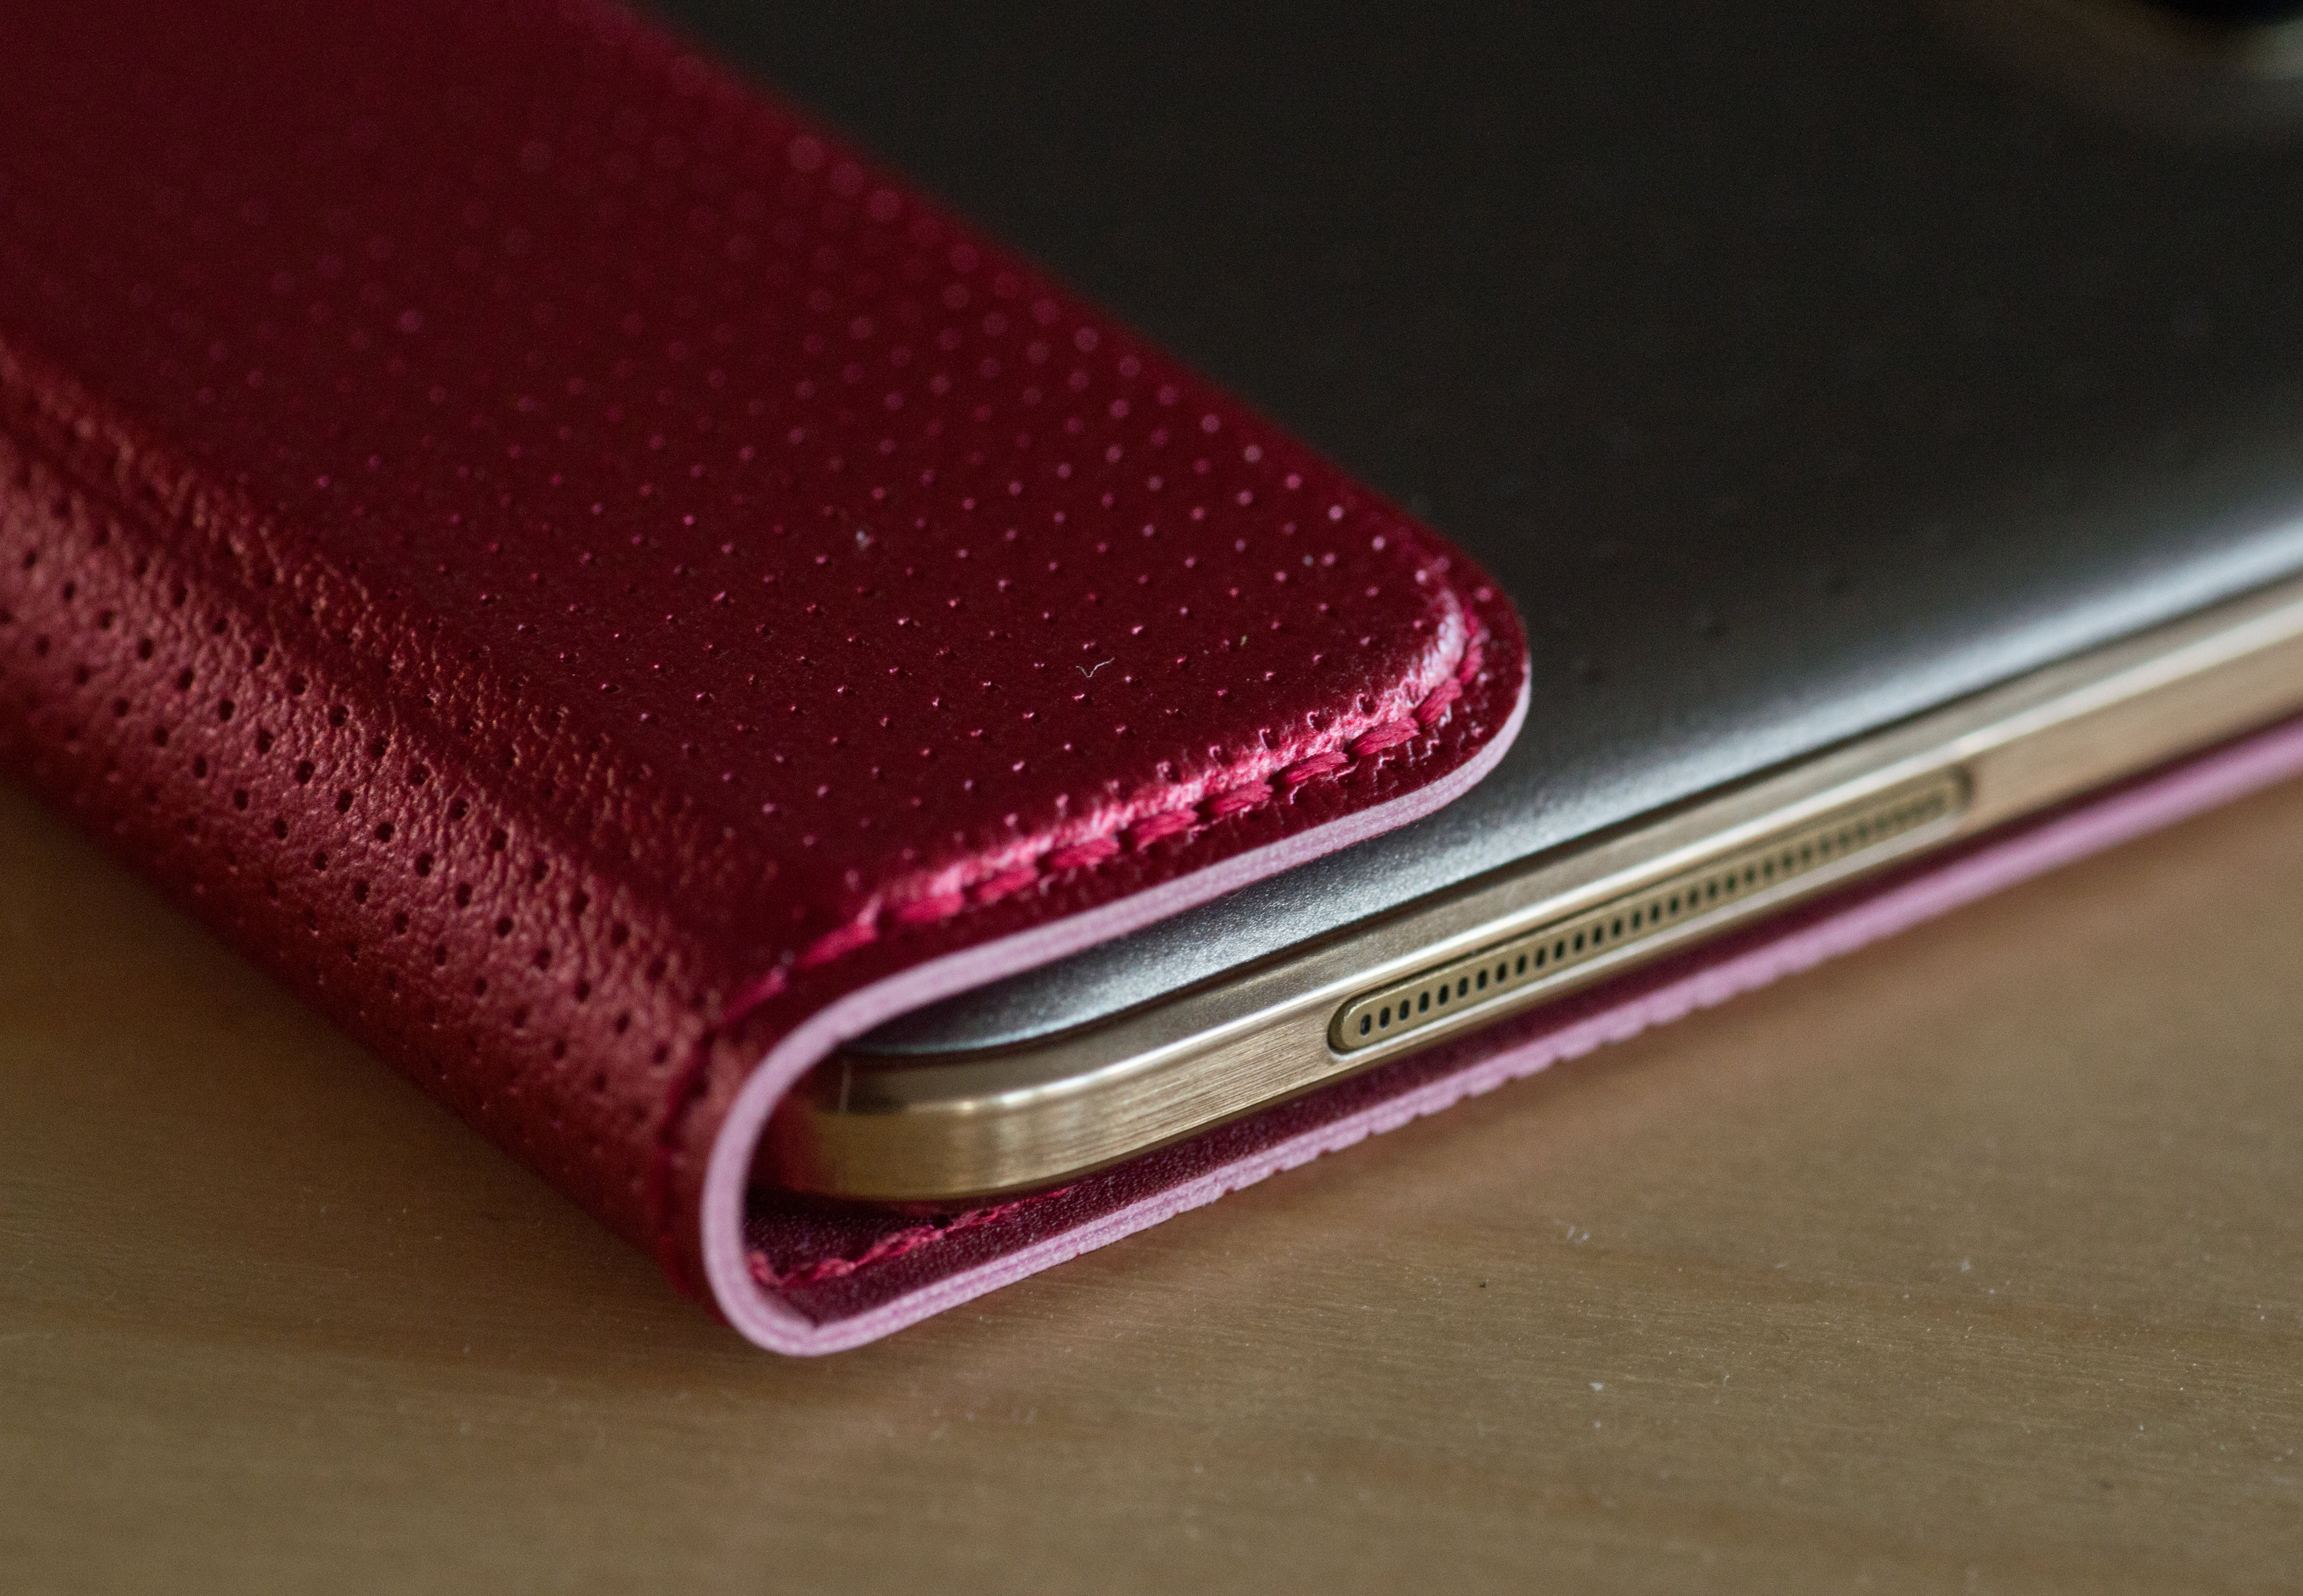 A photograph of the Samsung Galaxy Tab S 8.4's case.